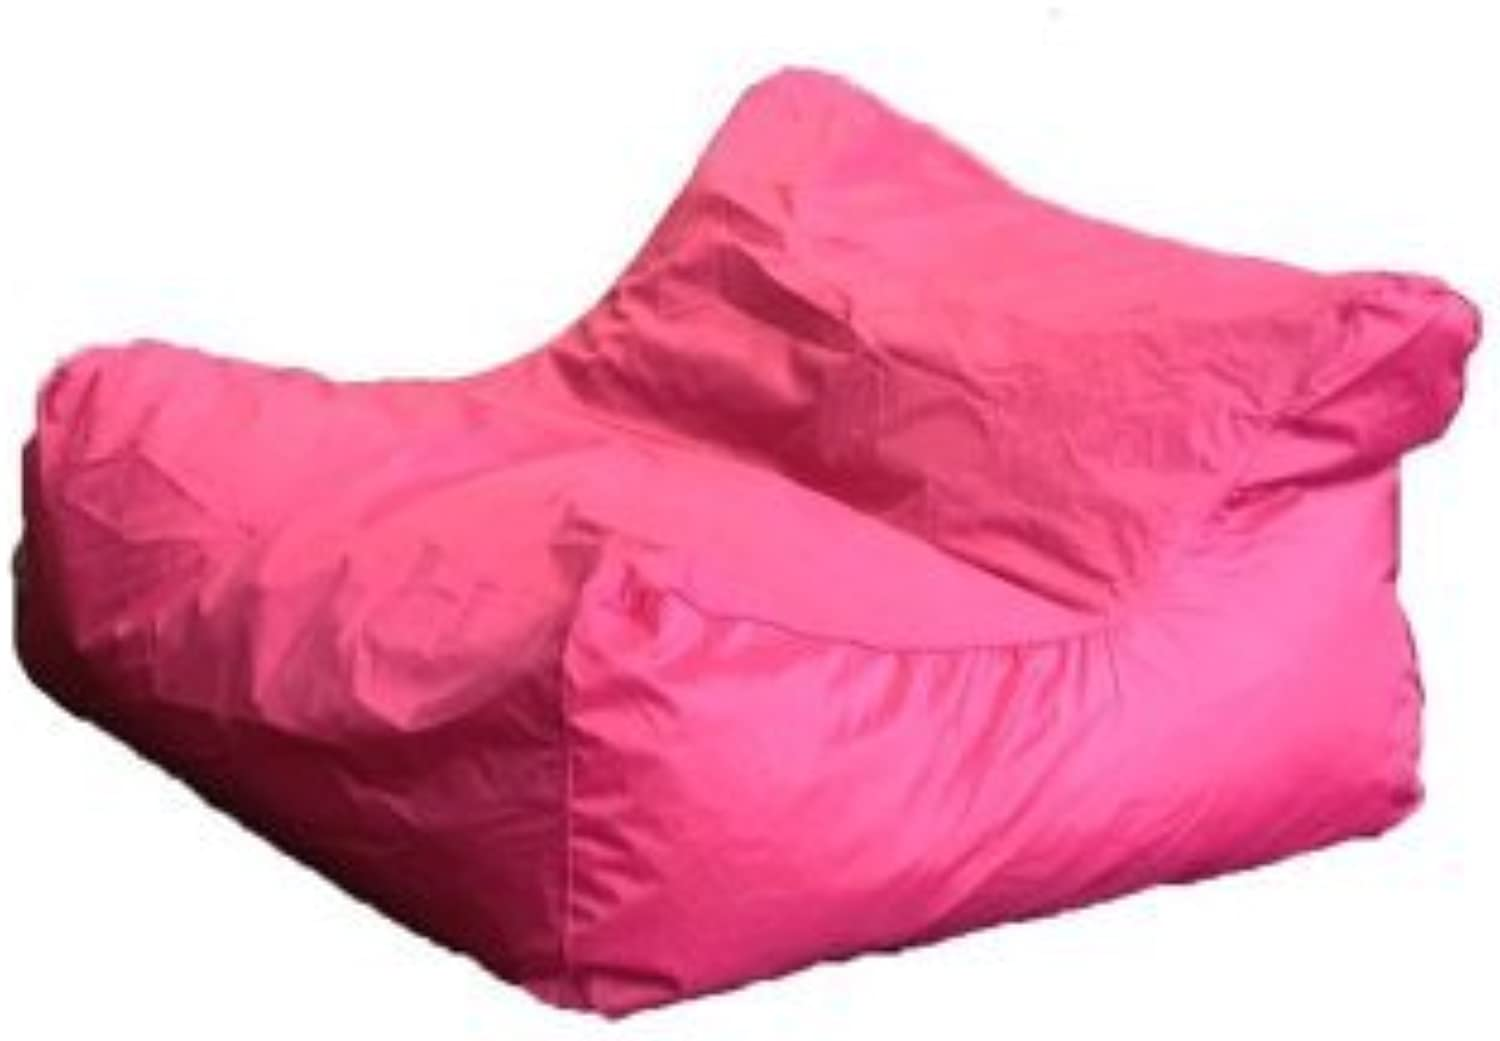 alto descuento Sit In In In Pool Sit In Pool Fuchsia Swimming Pool Memory Foam Sofa by Sit In Pool  precio al por mayor